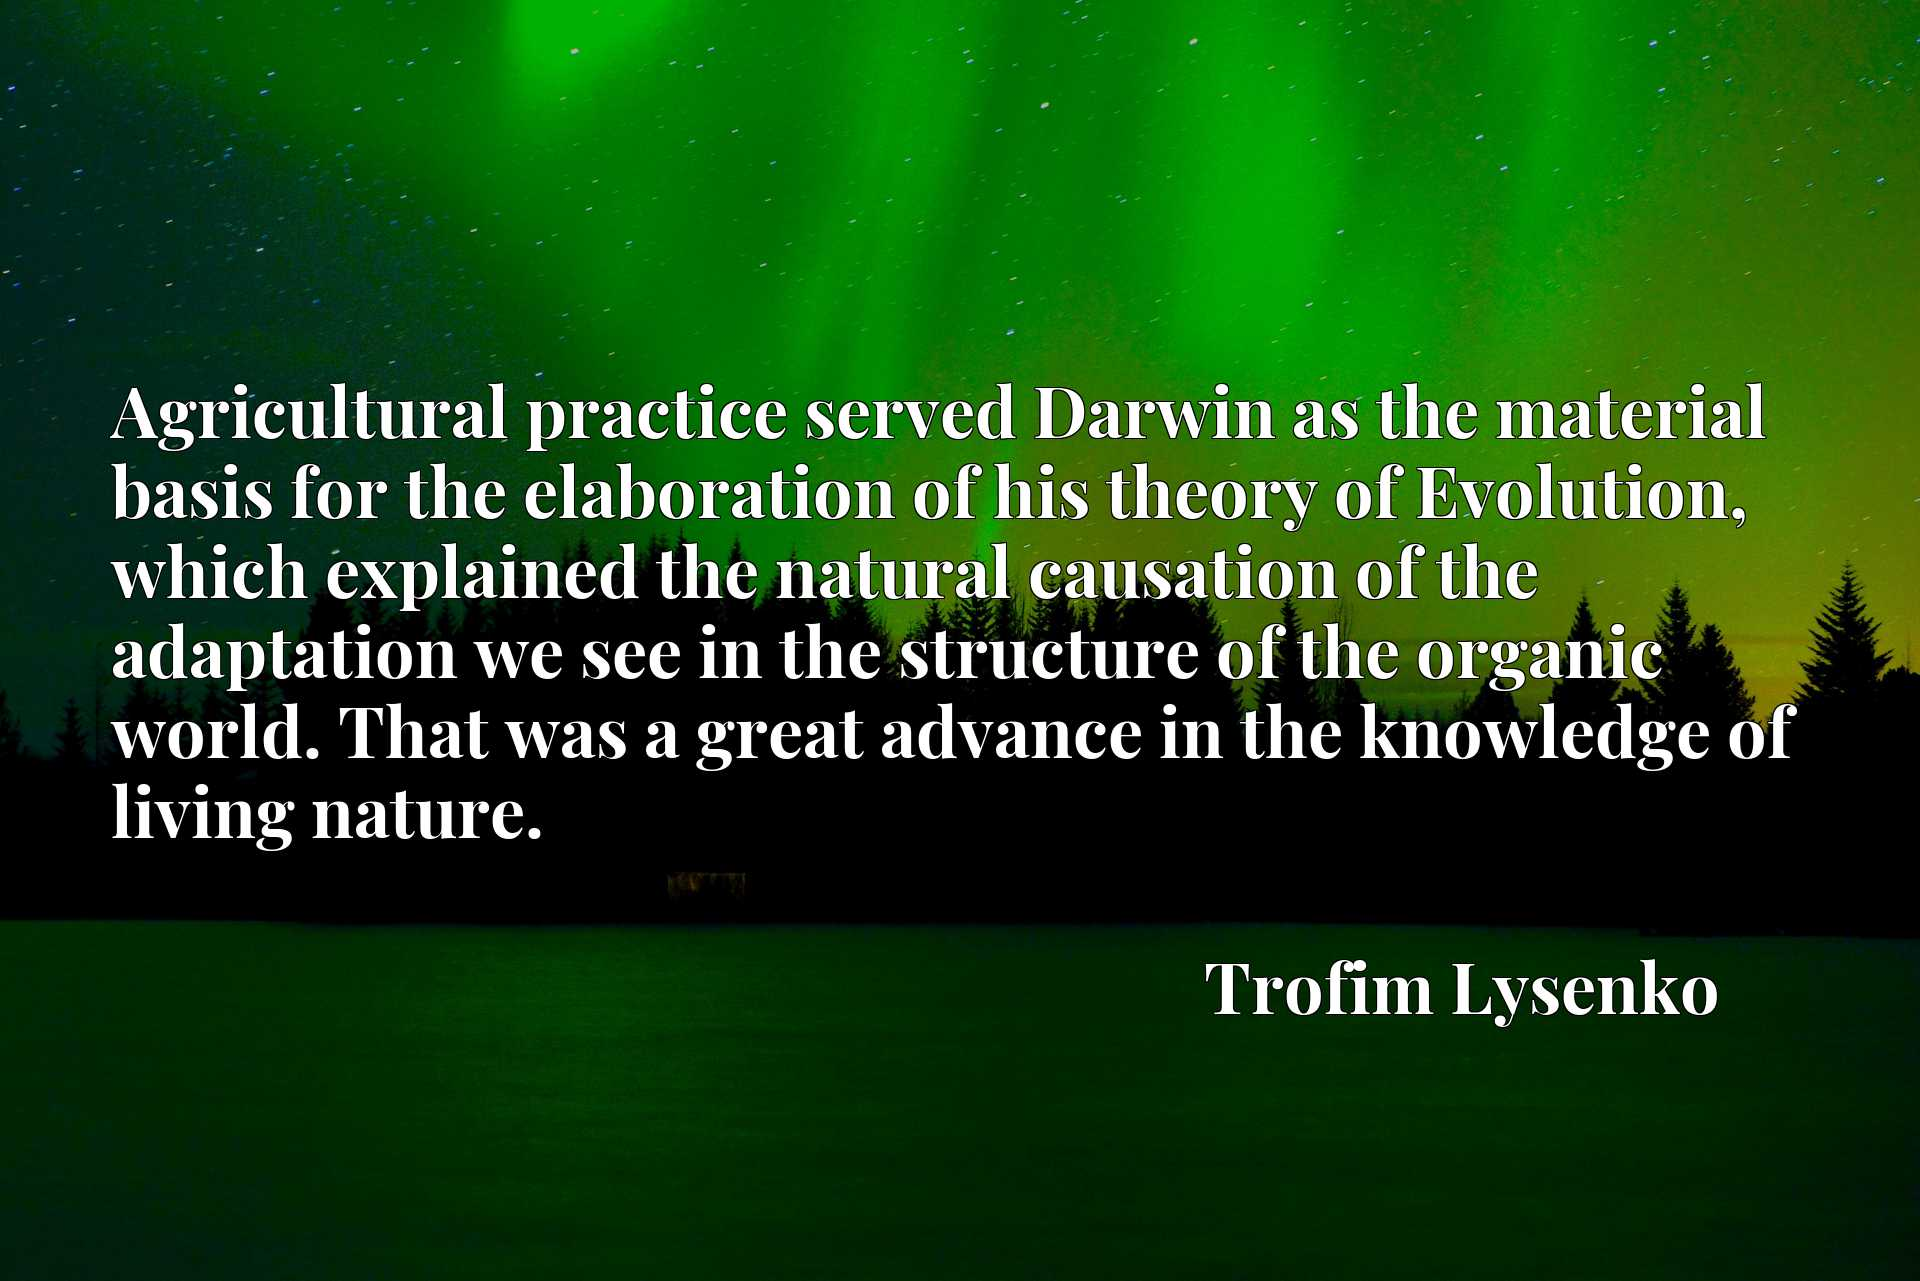 Agricultural practice served Darwin as the material basis for the elaboration of his theory of Evolution, which explained the natural causation of the adaptation we see in the structure of the organic world. That was a great advance in the knowledge of living nature.